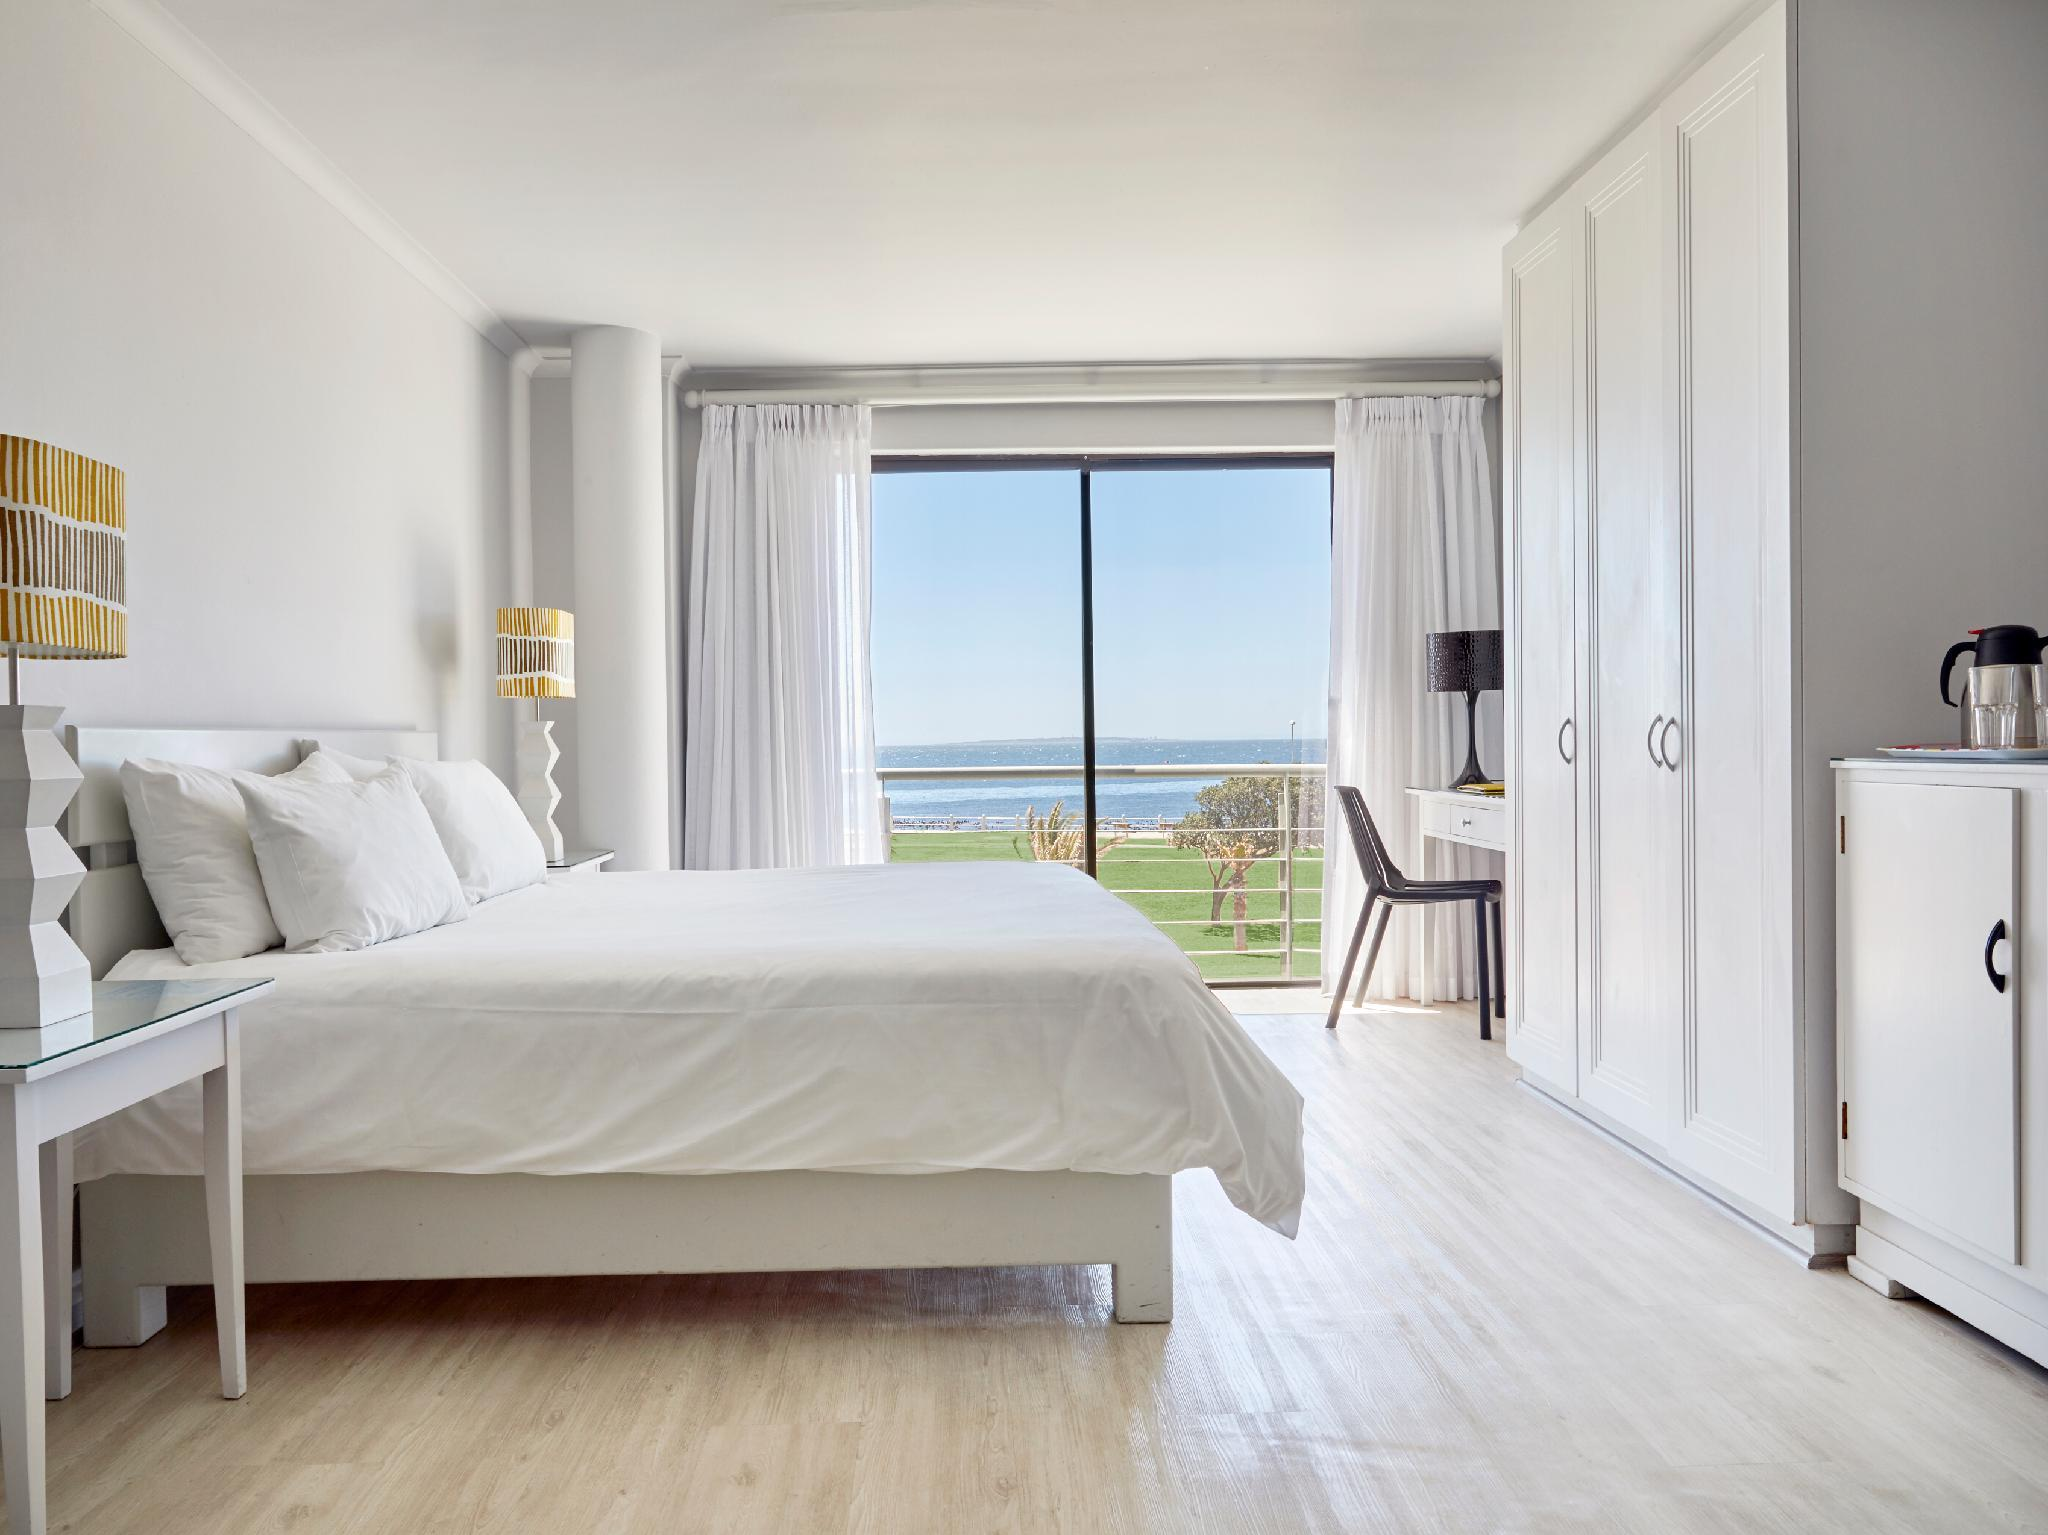 Quarto com vista para o mar (Sea View Room)